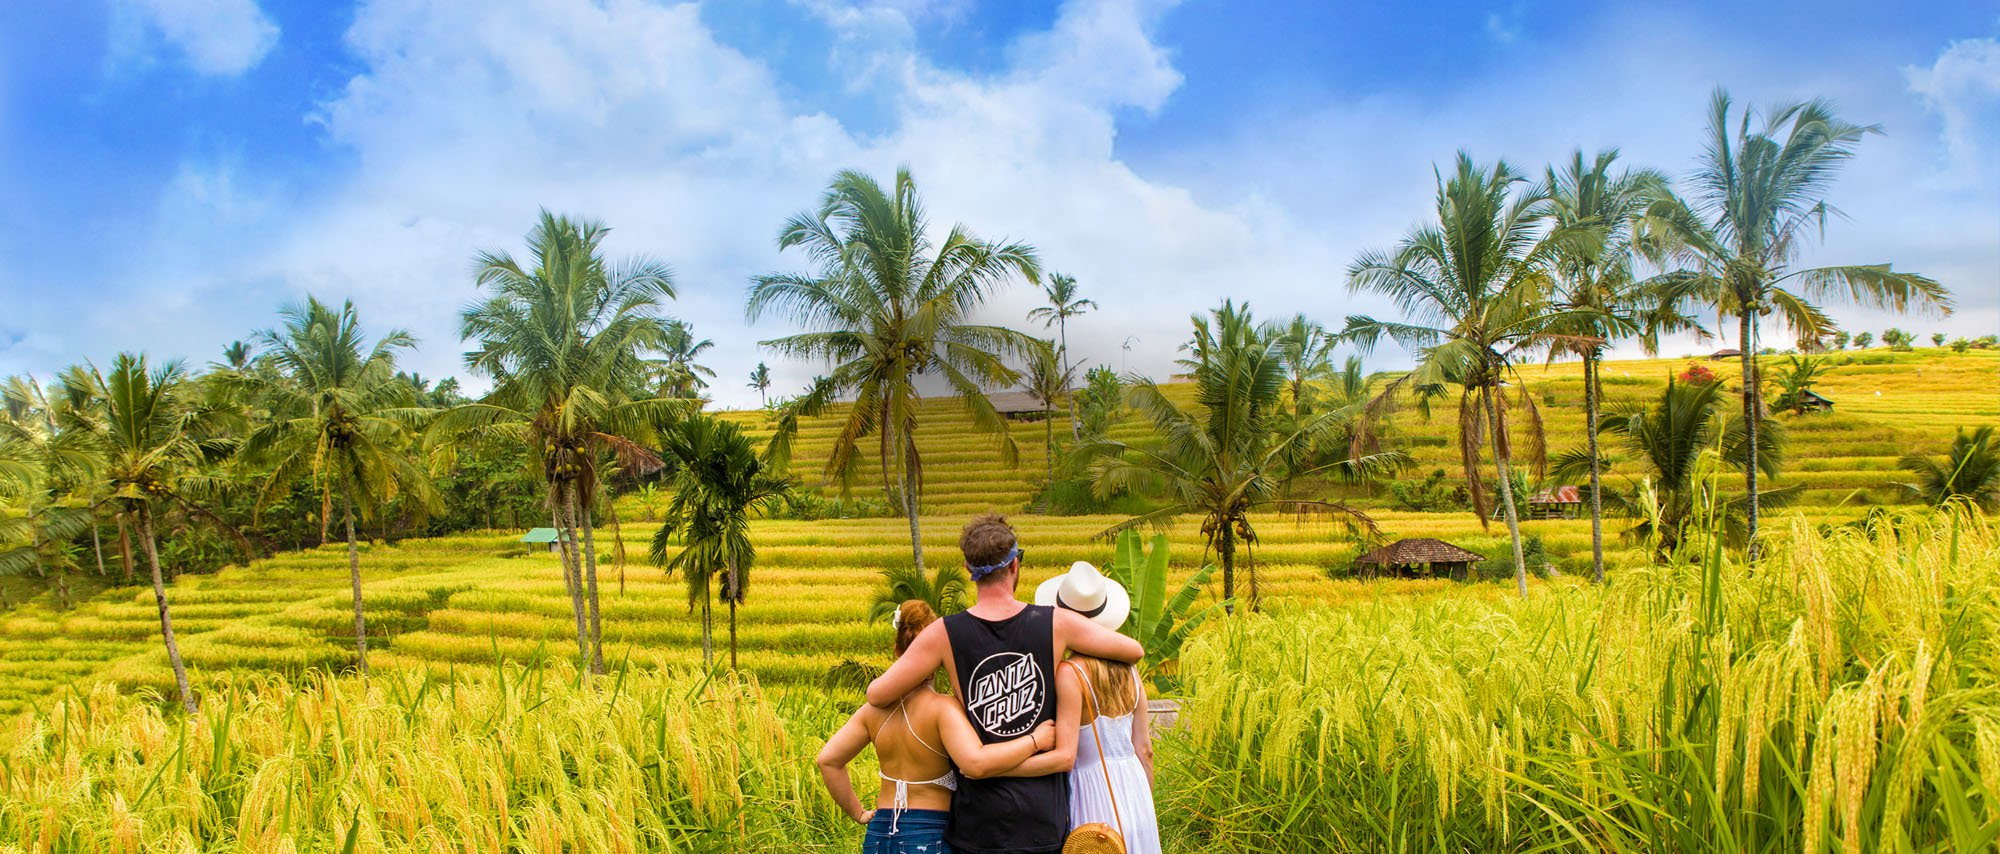 Trip Bali Backpacking Travelling Bali Group Tours Tips